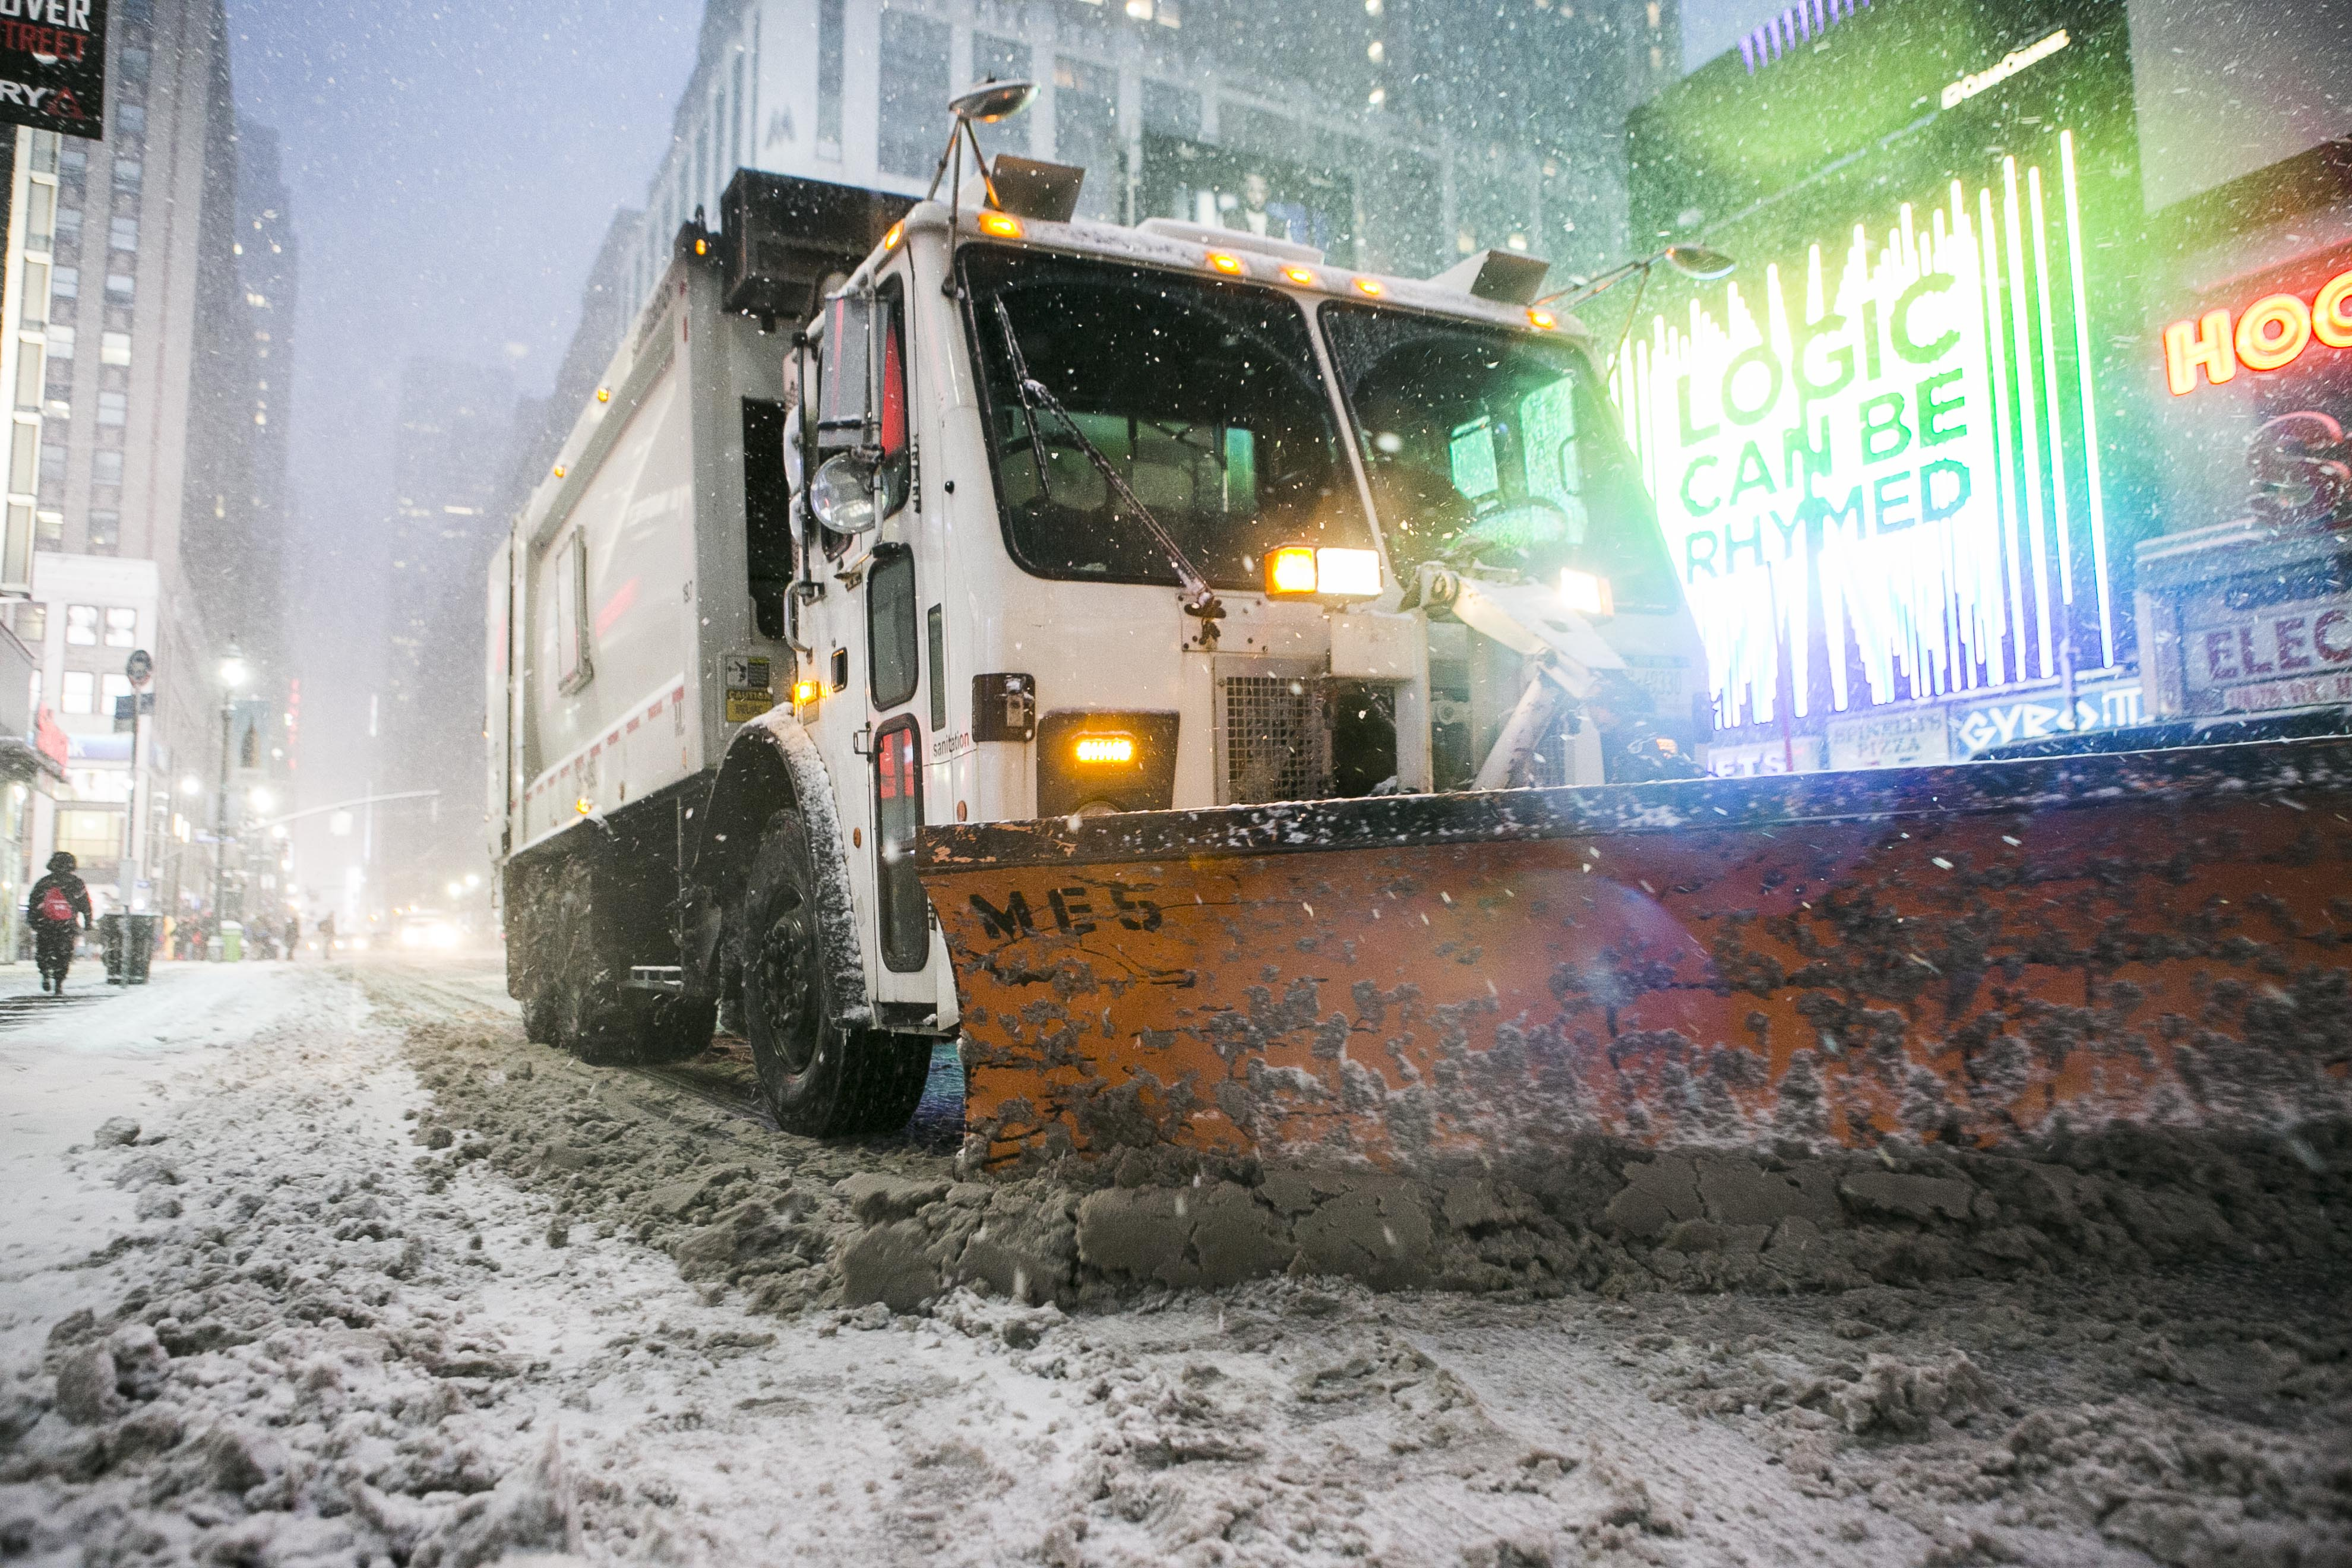 Experts Defend Snowstorm Forecast, Say Blizzard Prediction a Tough Science